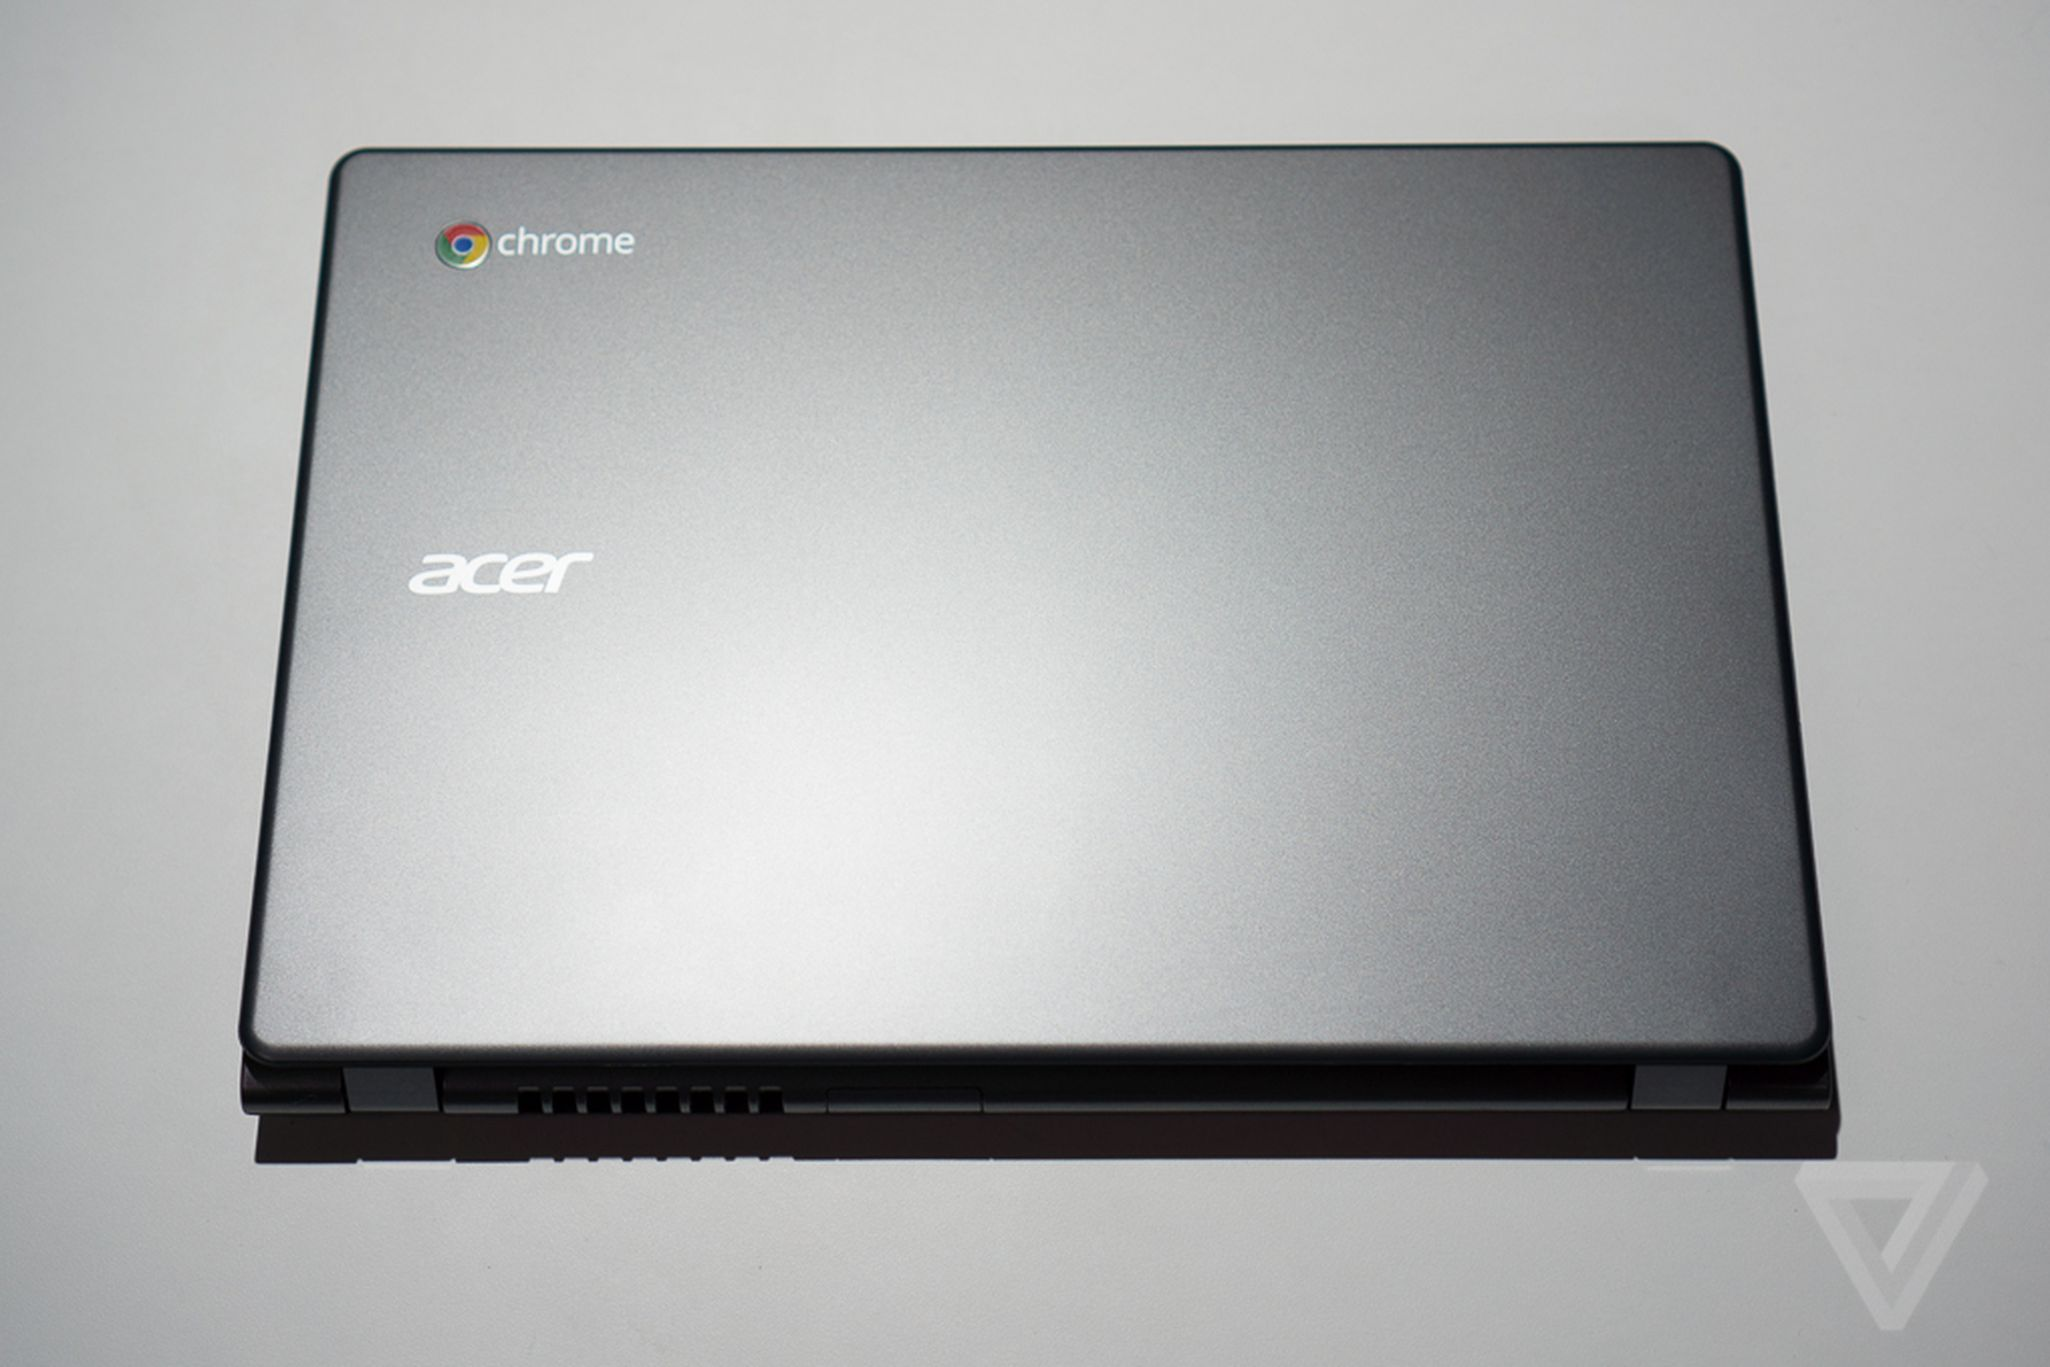 Acer C720 Chromebook review | The Verge